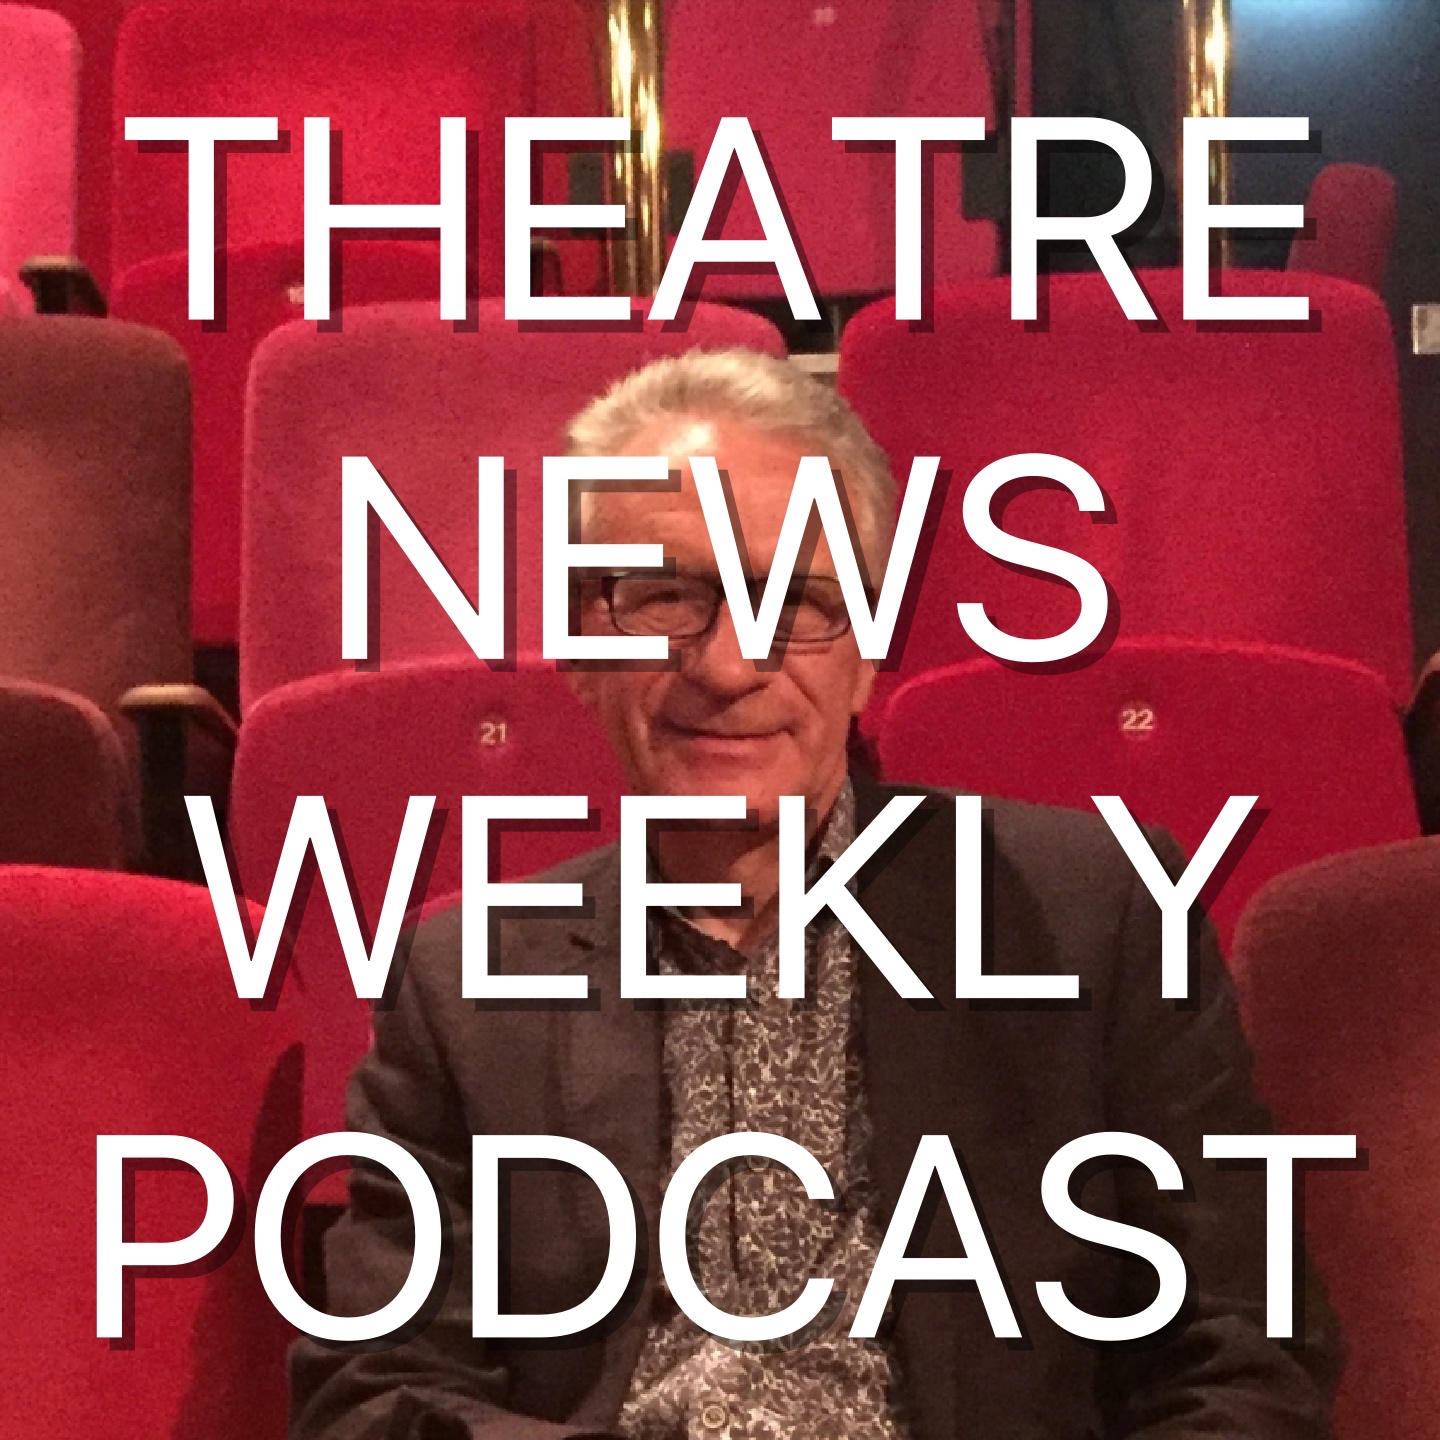 Theatre News Weekly show art